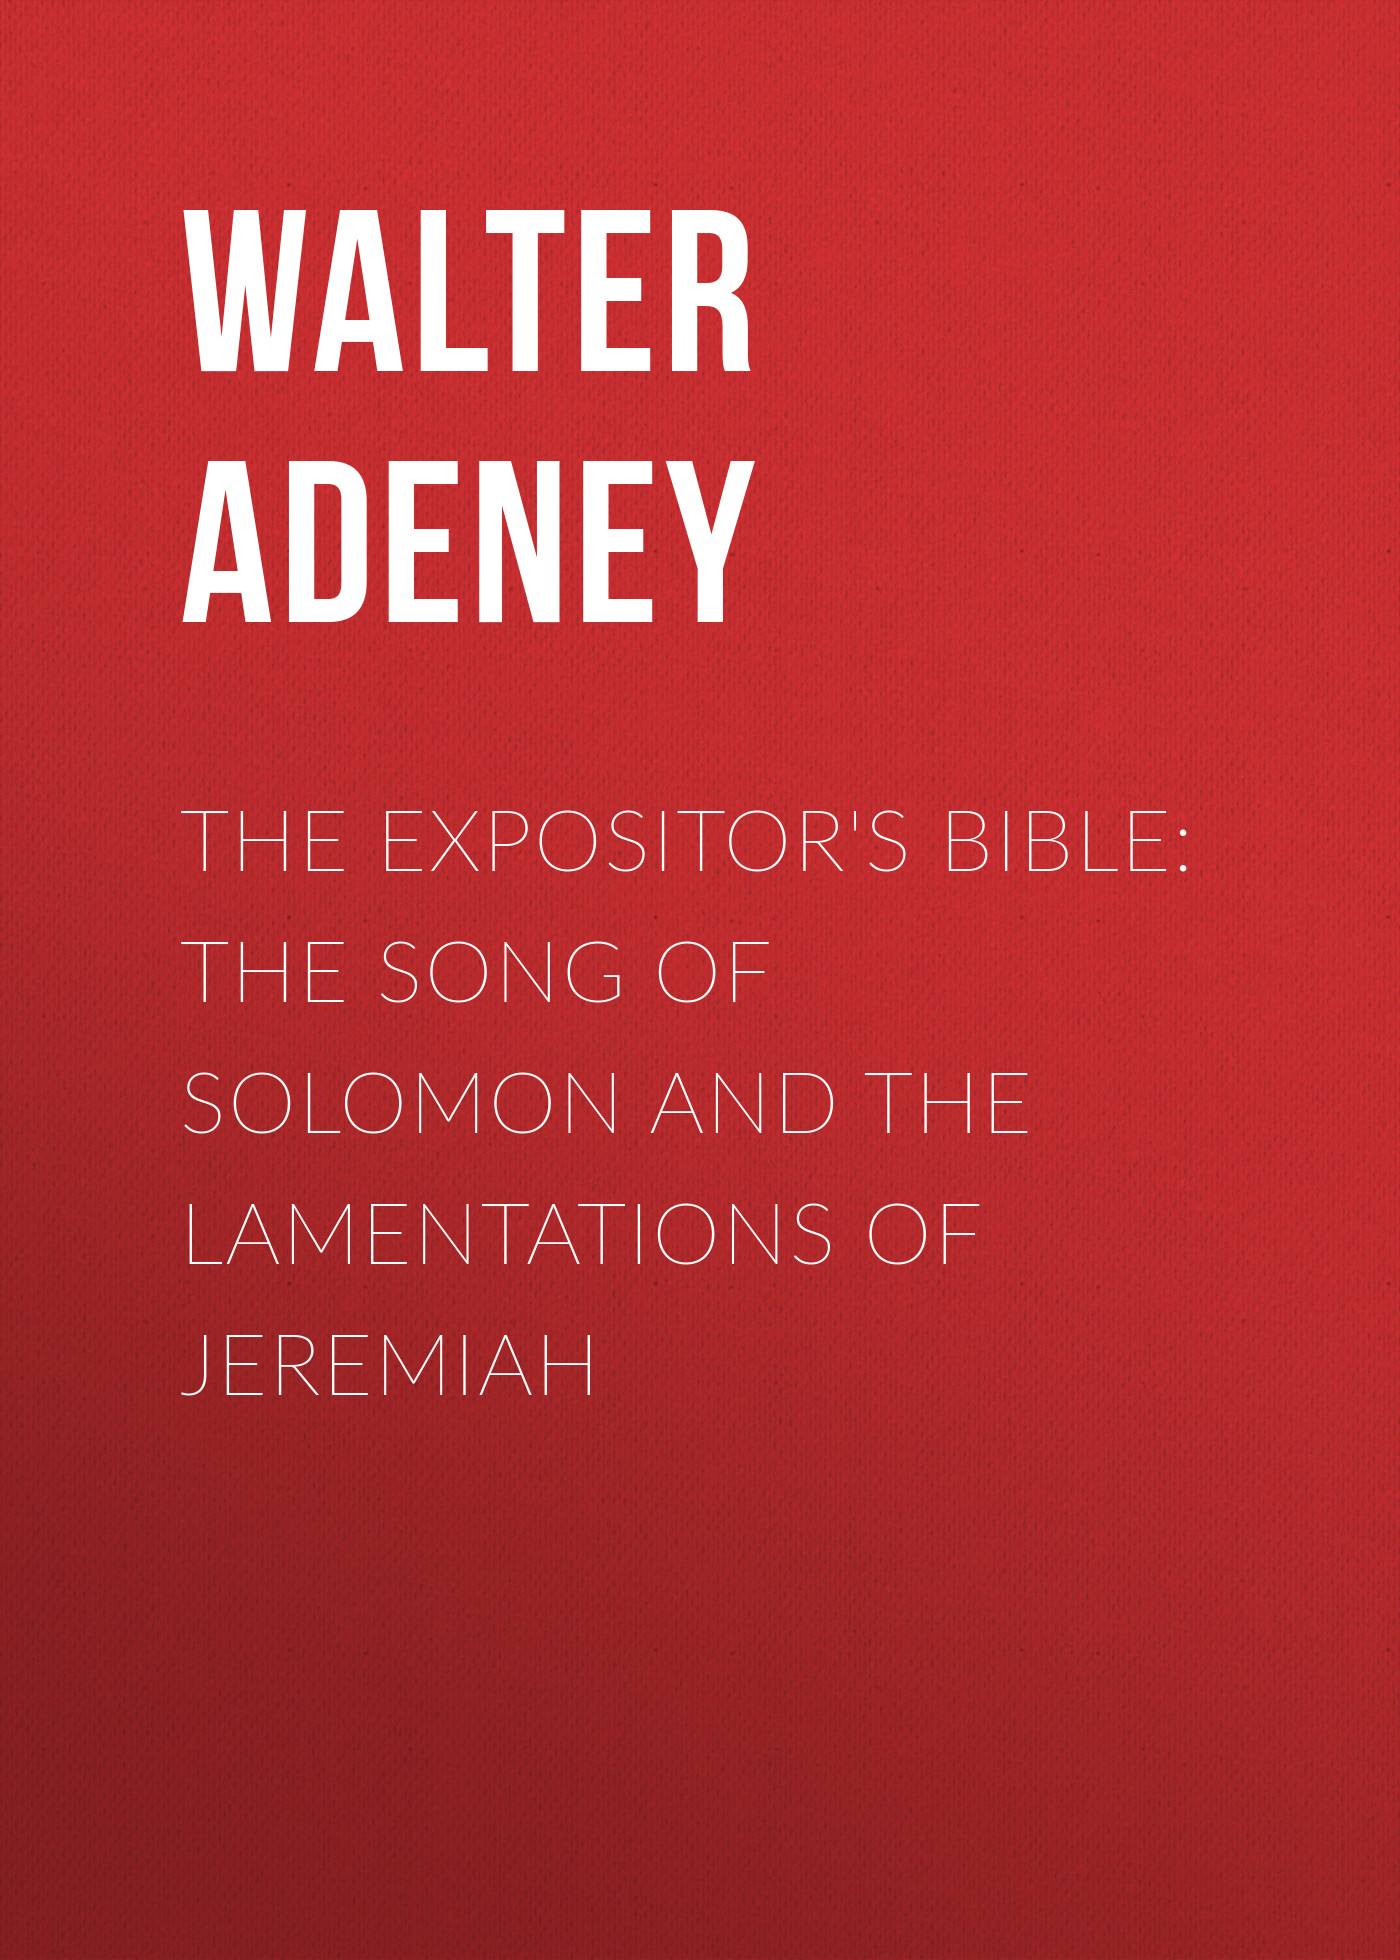 цена Adeney Walter Frederic The Expositor's Bible: The Song of Solomon and the Lamentations of Jeremiah